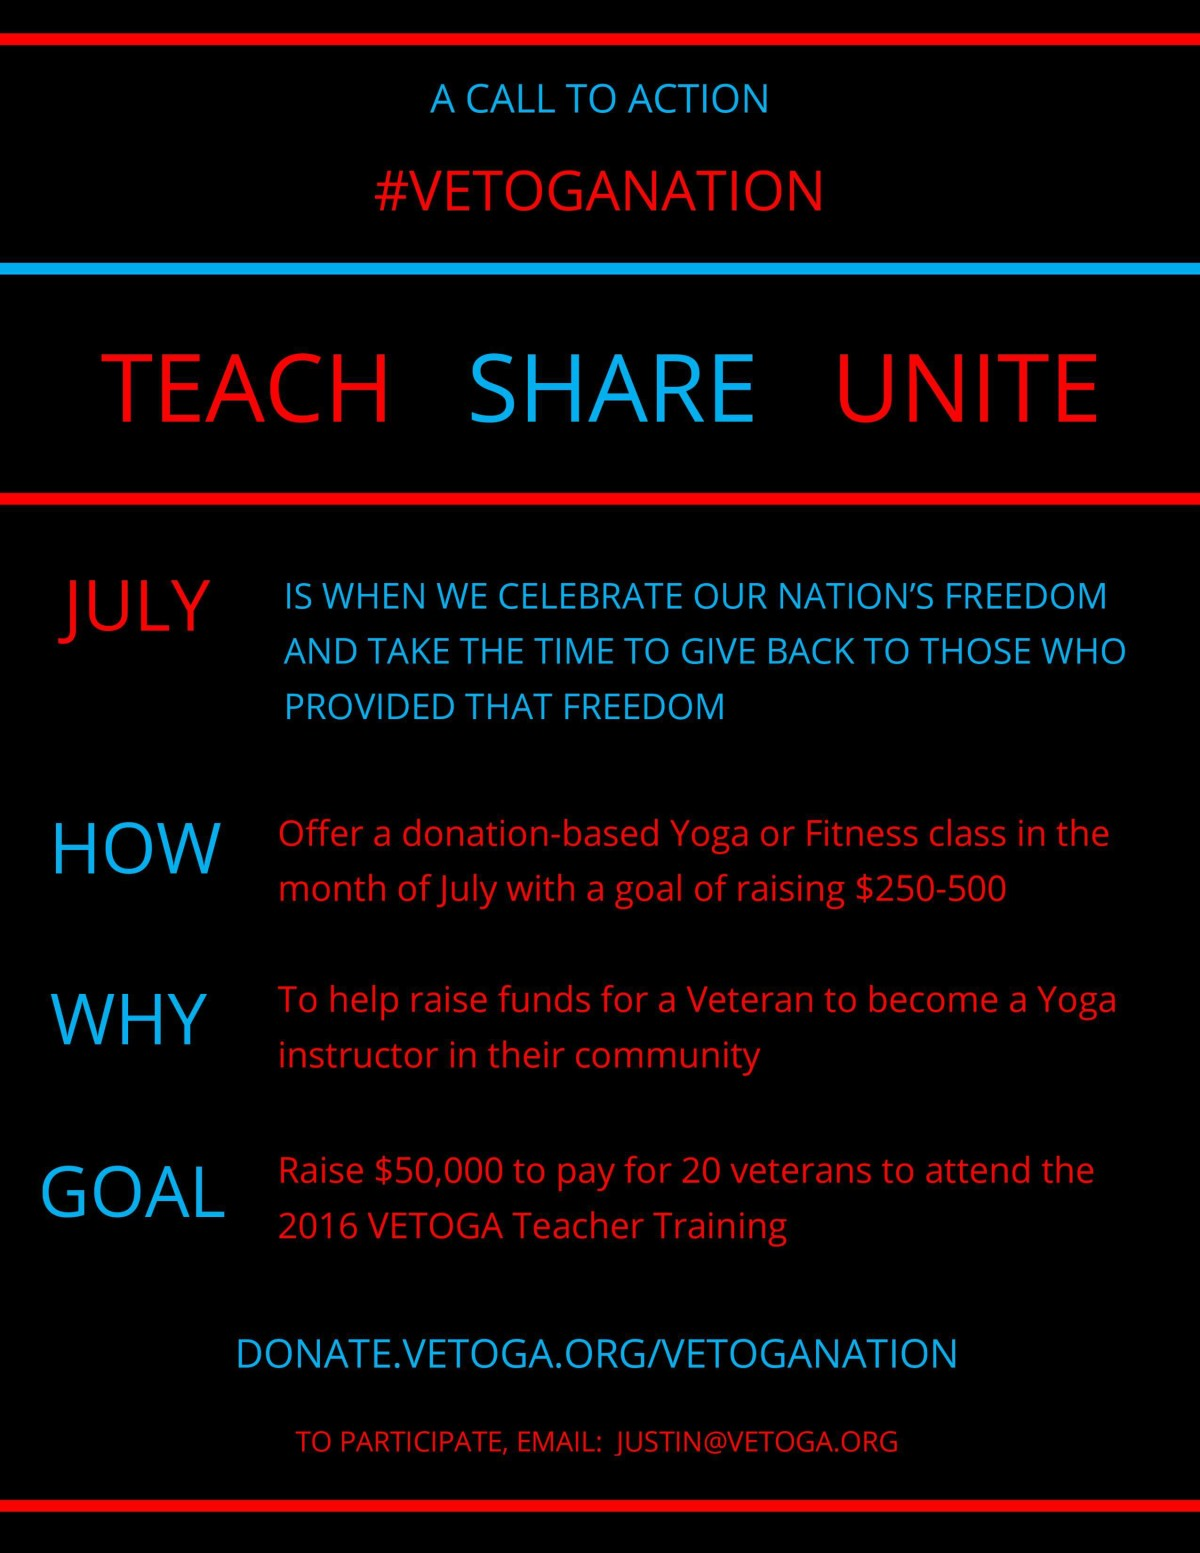 A Call to Action - #VETOGANATION